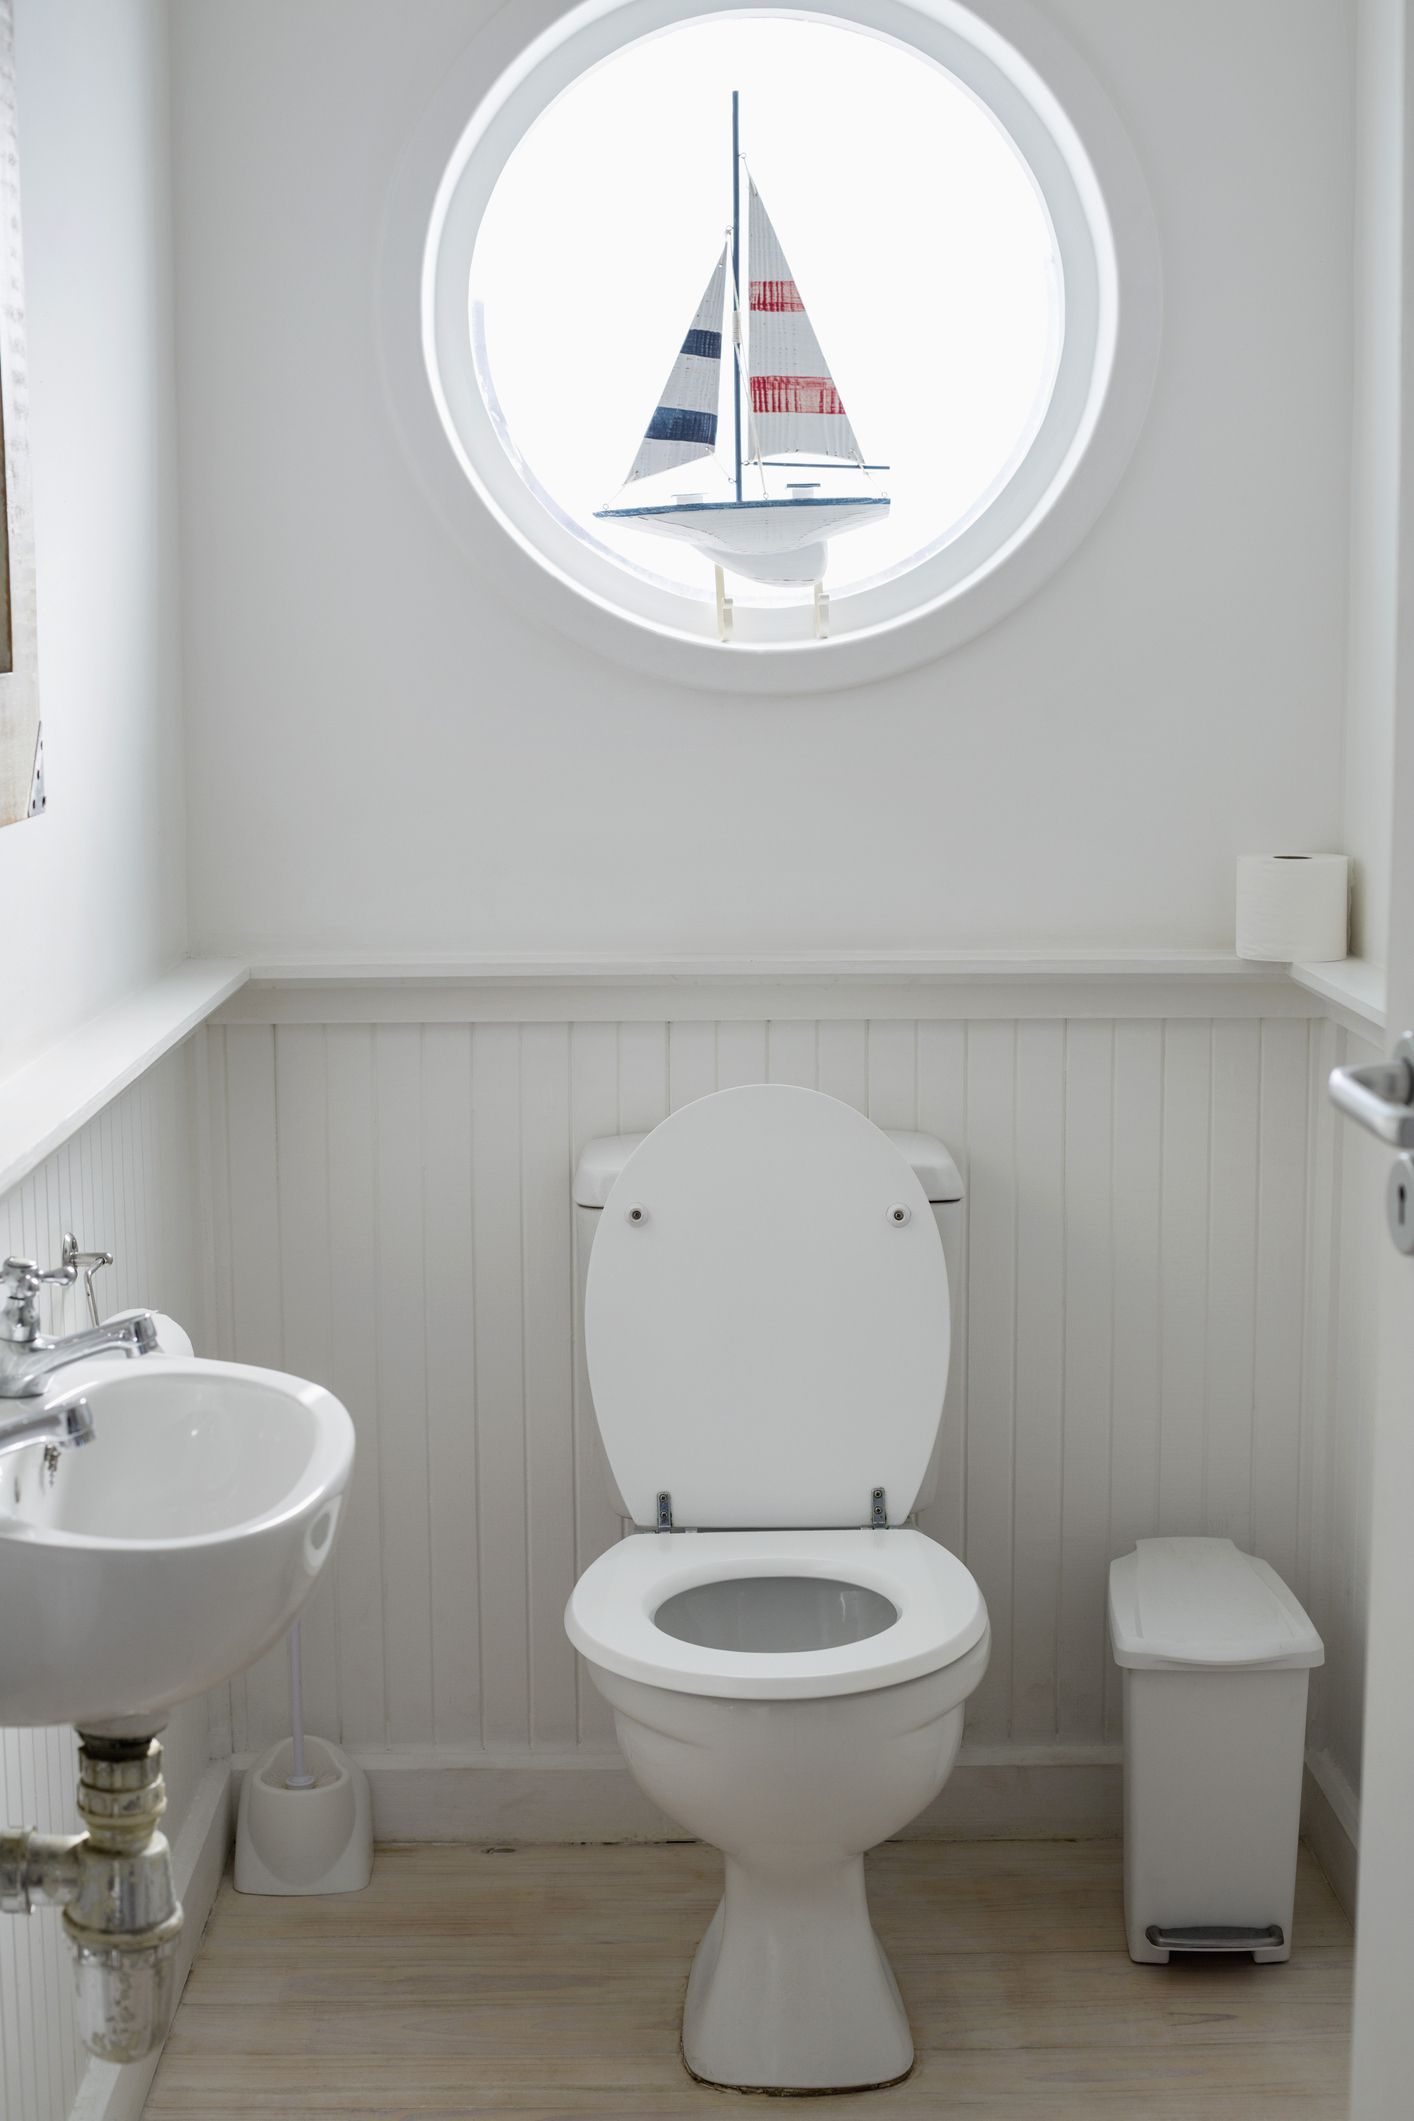 Half-Bath Ideas: How to Make This Tiny Space Shine